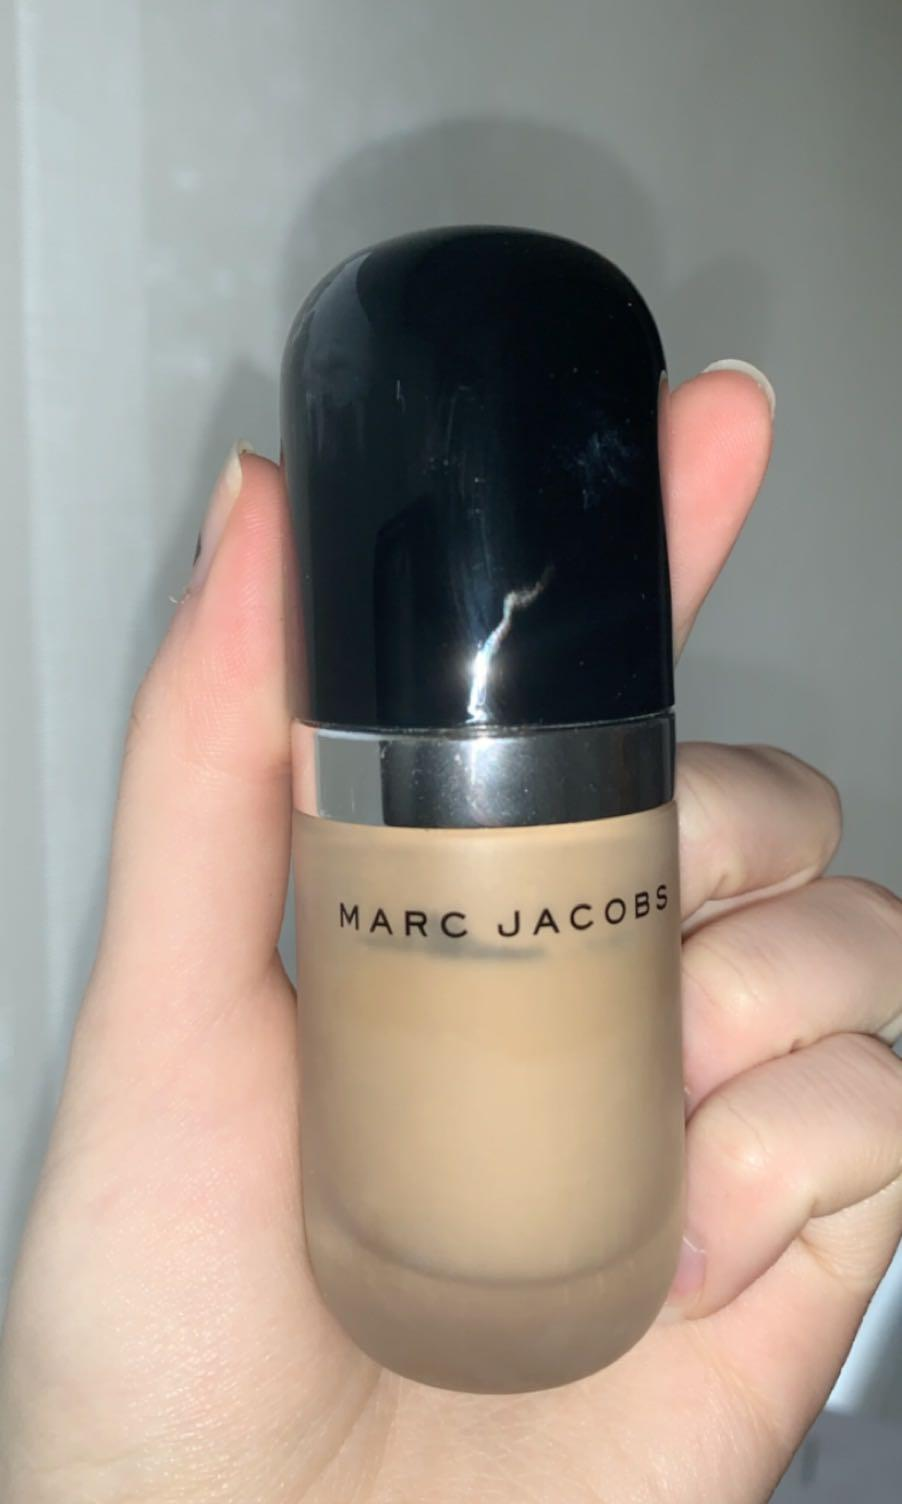 MARC JACOBS re(marc)able full cover foundation concentrate 27 BISQUE NEUTRAL